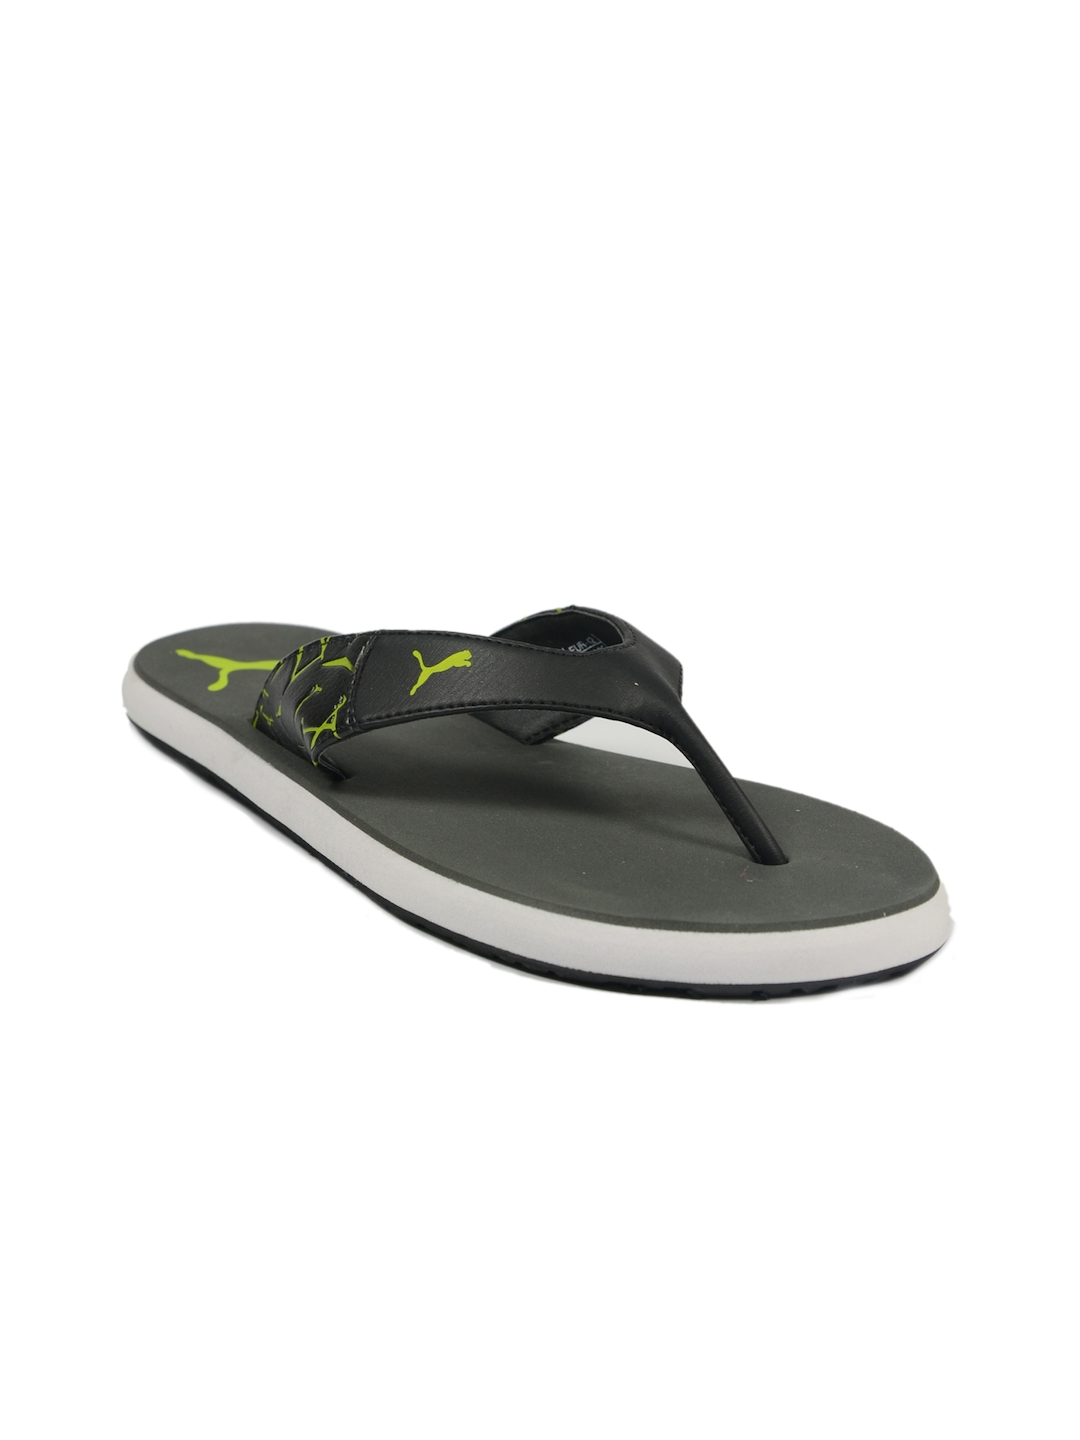 a1a11306ea546e Buy Puma Men s Winglet II Grey Yellow White Flip Flop - Flip Flops ...